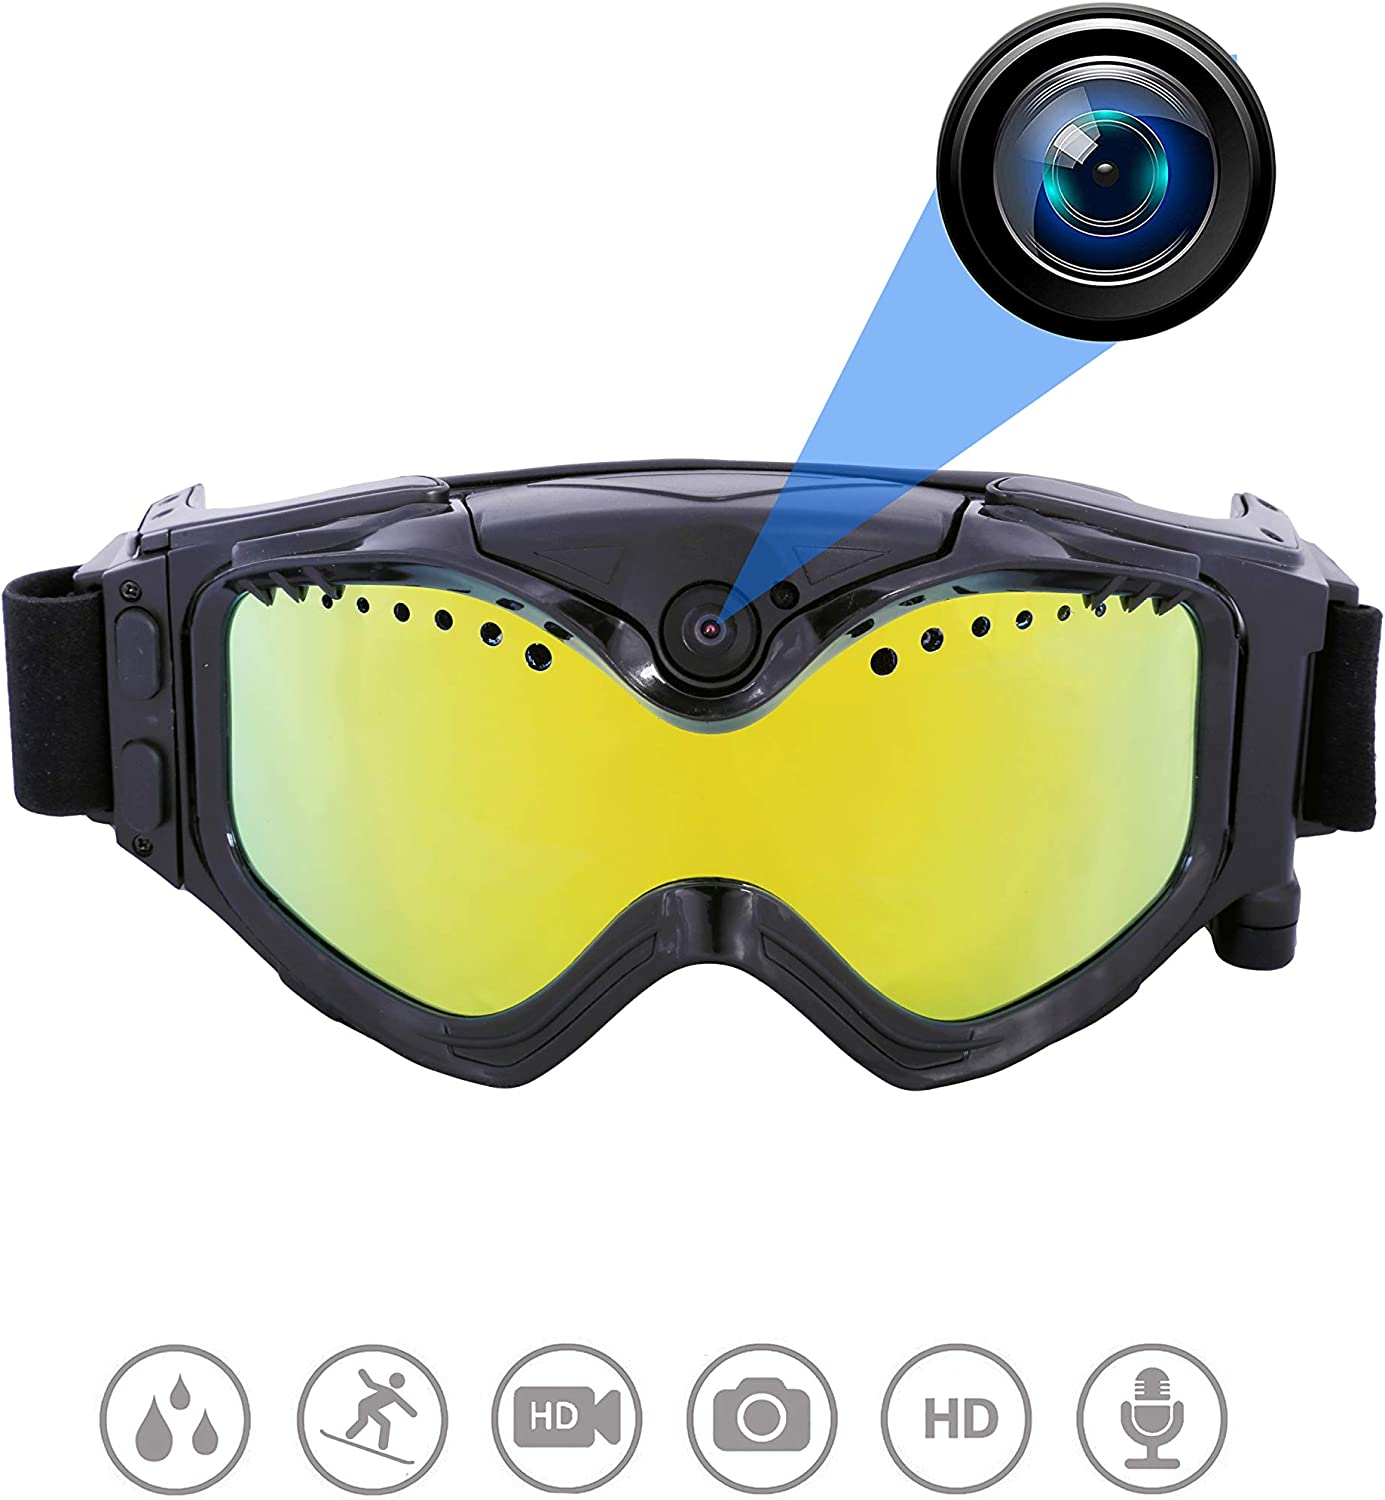 OHO 32GB Ultra HD Action Camera Ski Goggles with 140 Degree Builtin Camera, Anti Fog and UV400 Predection Ski Lens for Men Women Adult